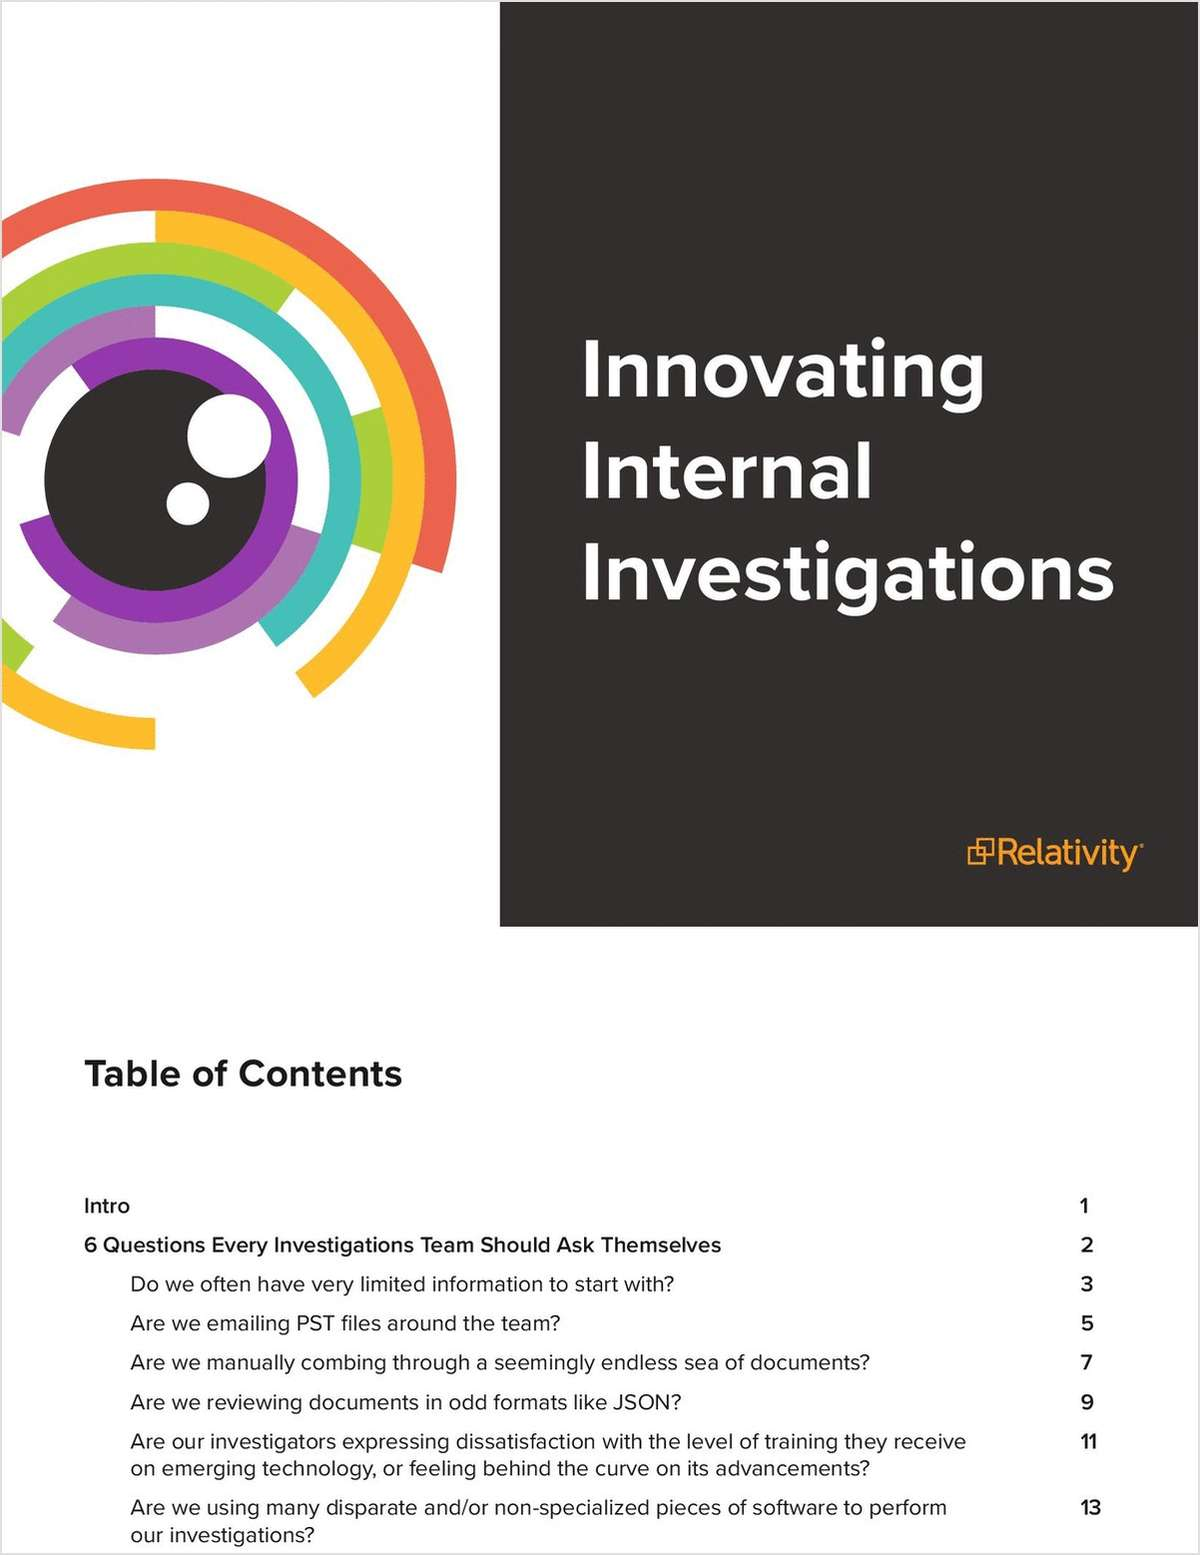 In-house legal teams are constantly being asked to do more with less, so it's imperative that your internal investigations  process is strong. The questions outlined in this ebook will help you determine if any gaps exist and how to streamline your workflows.